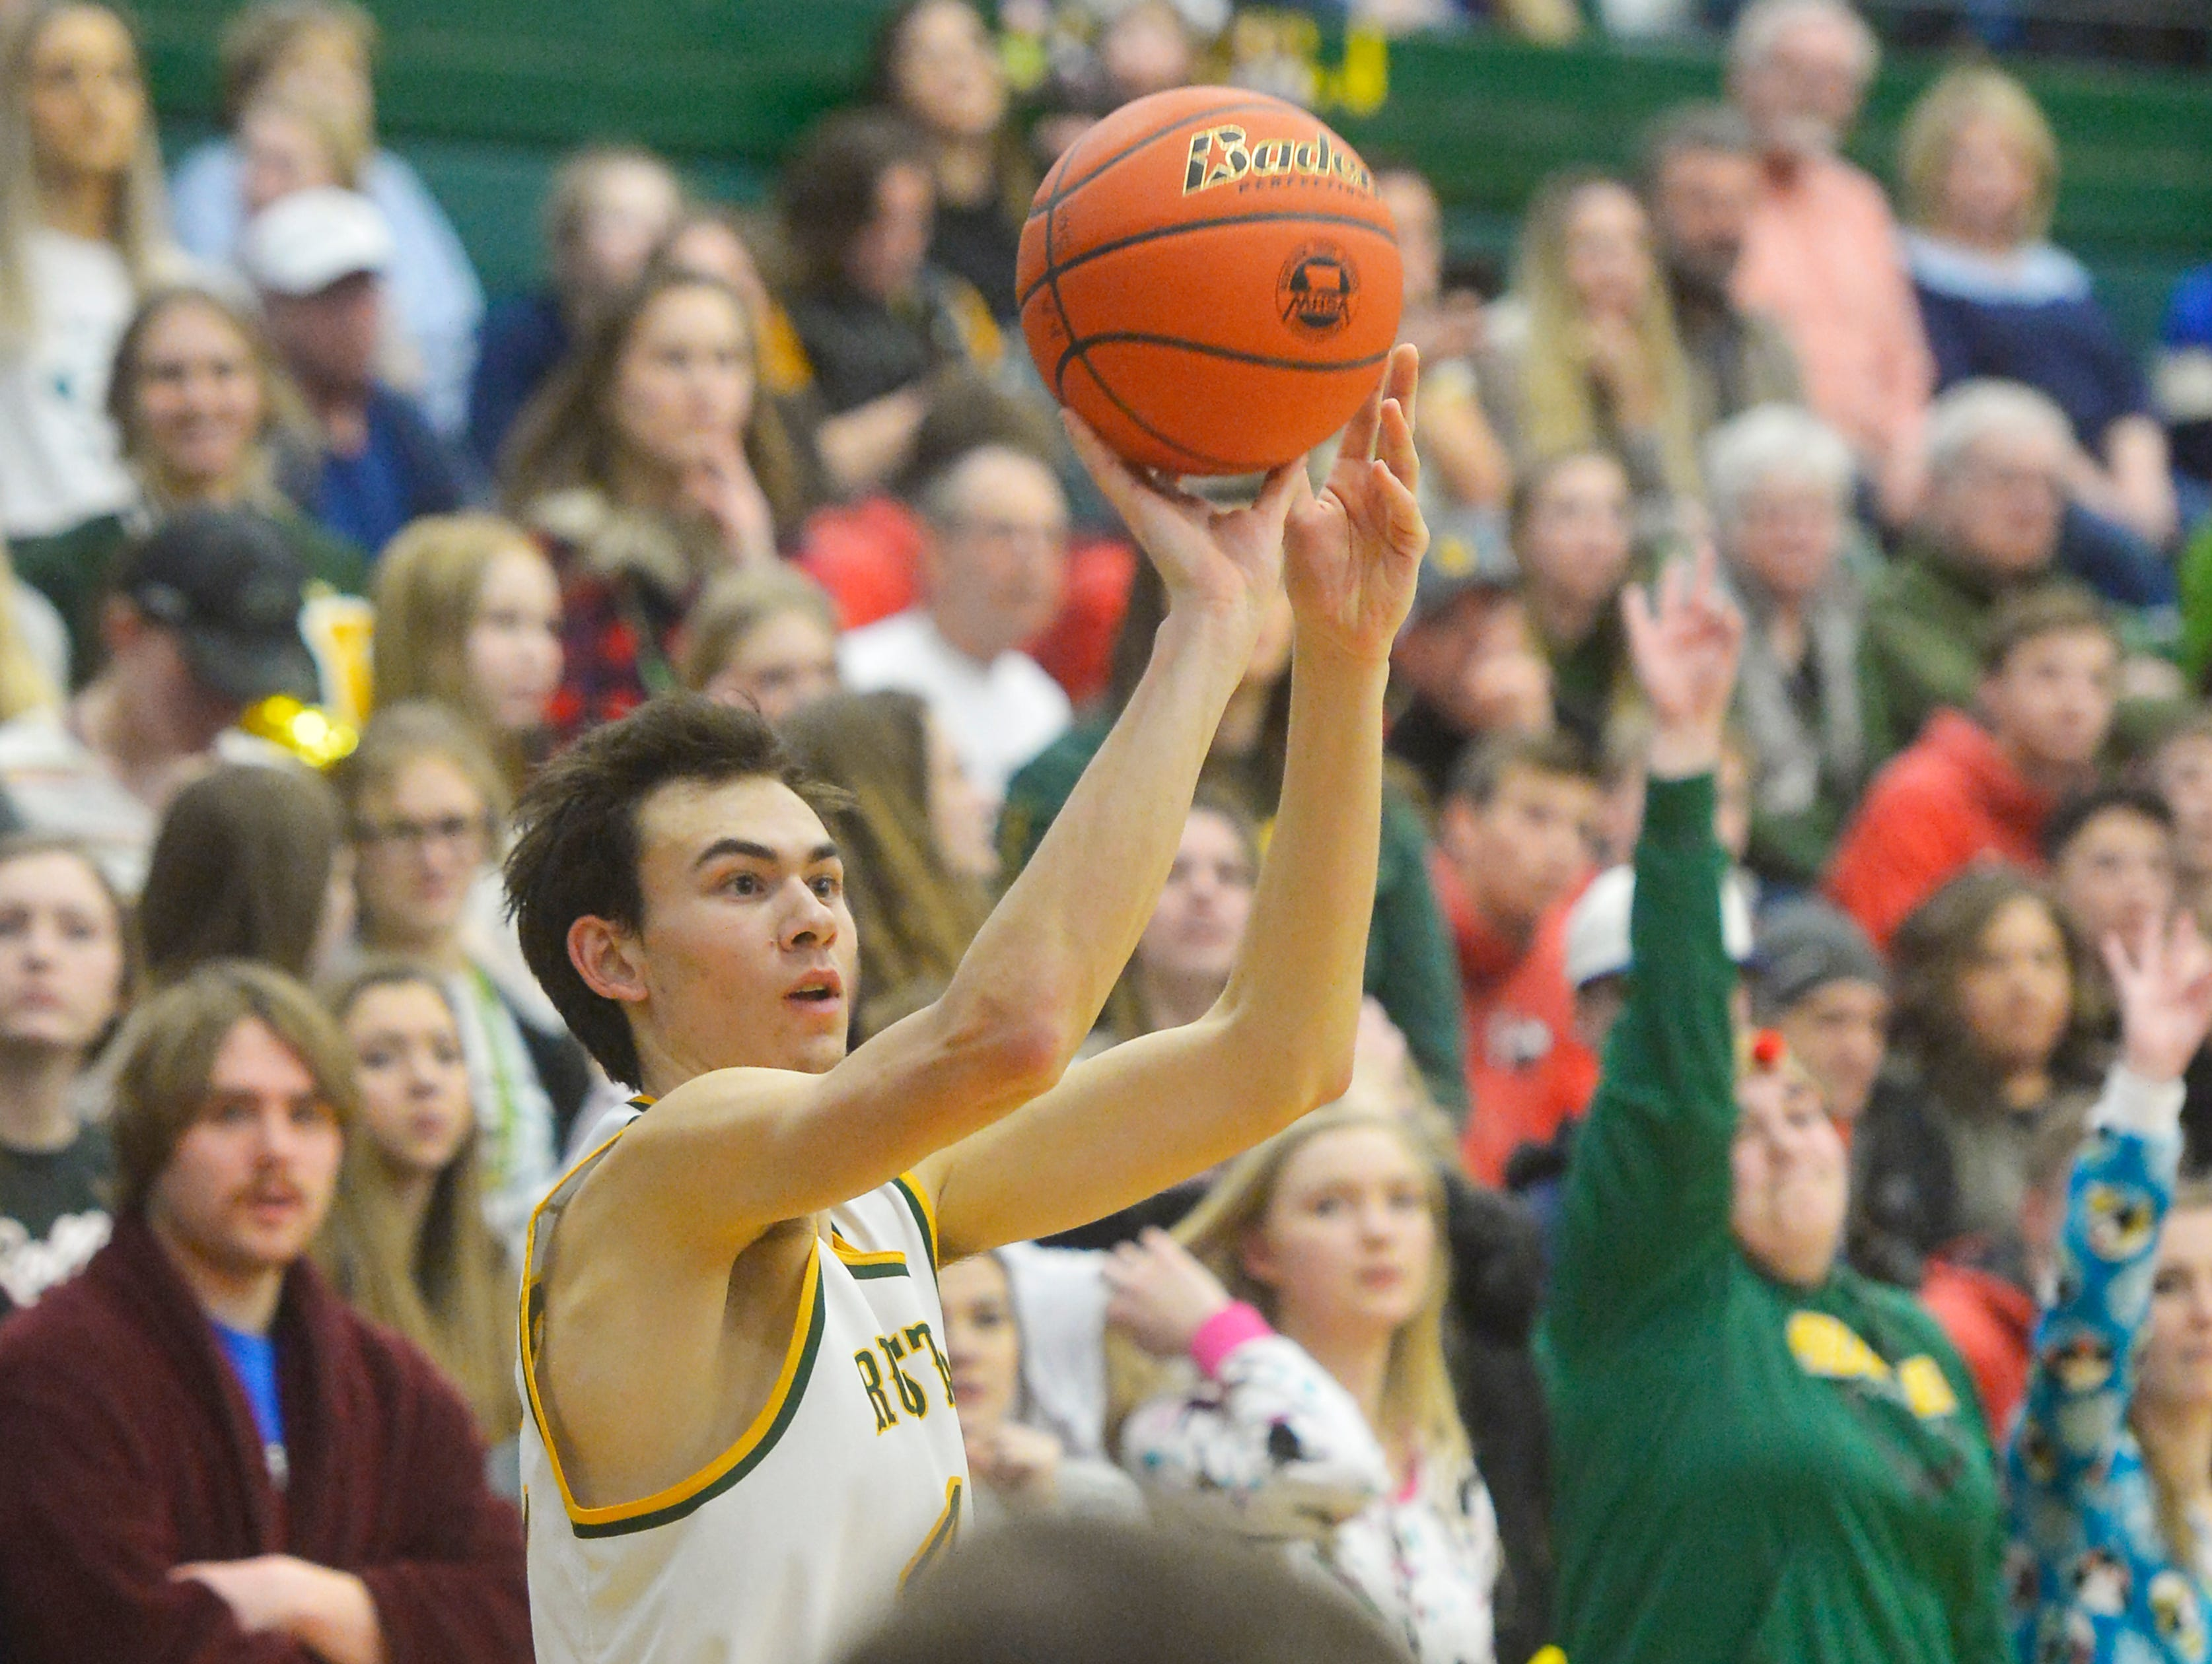 CMR's Russell Gagne shoots during the semifinal game of the Eastern AA Basketball Tournament at the CMR Fieldhouse, Friday.